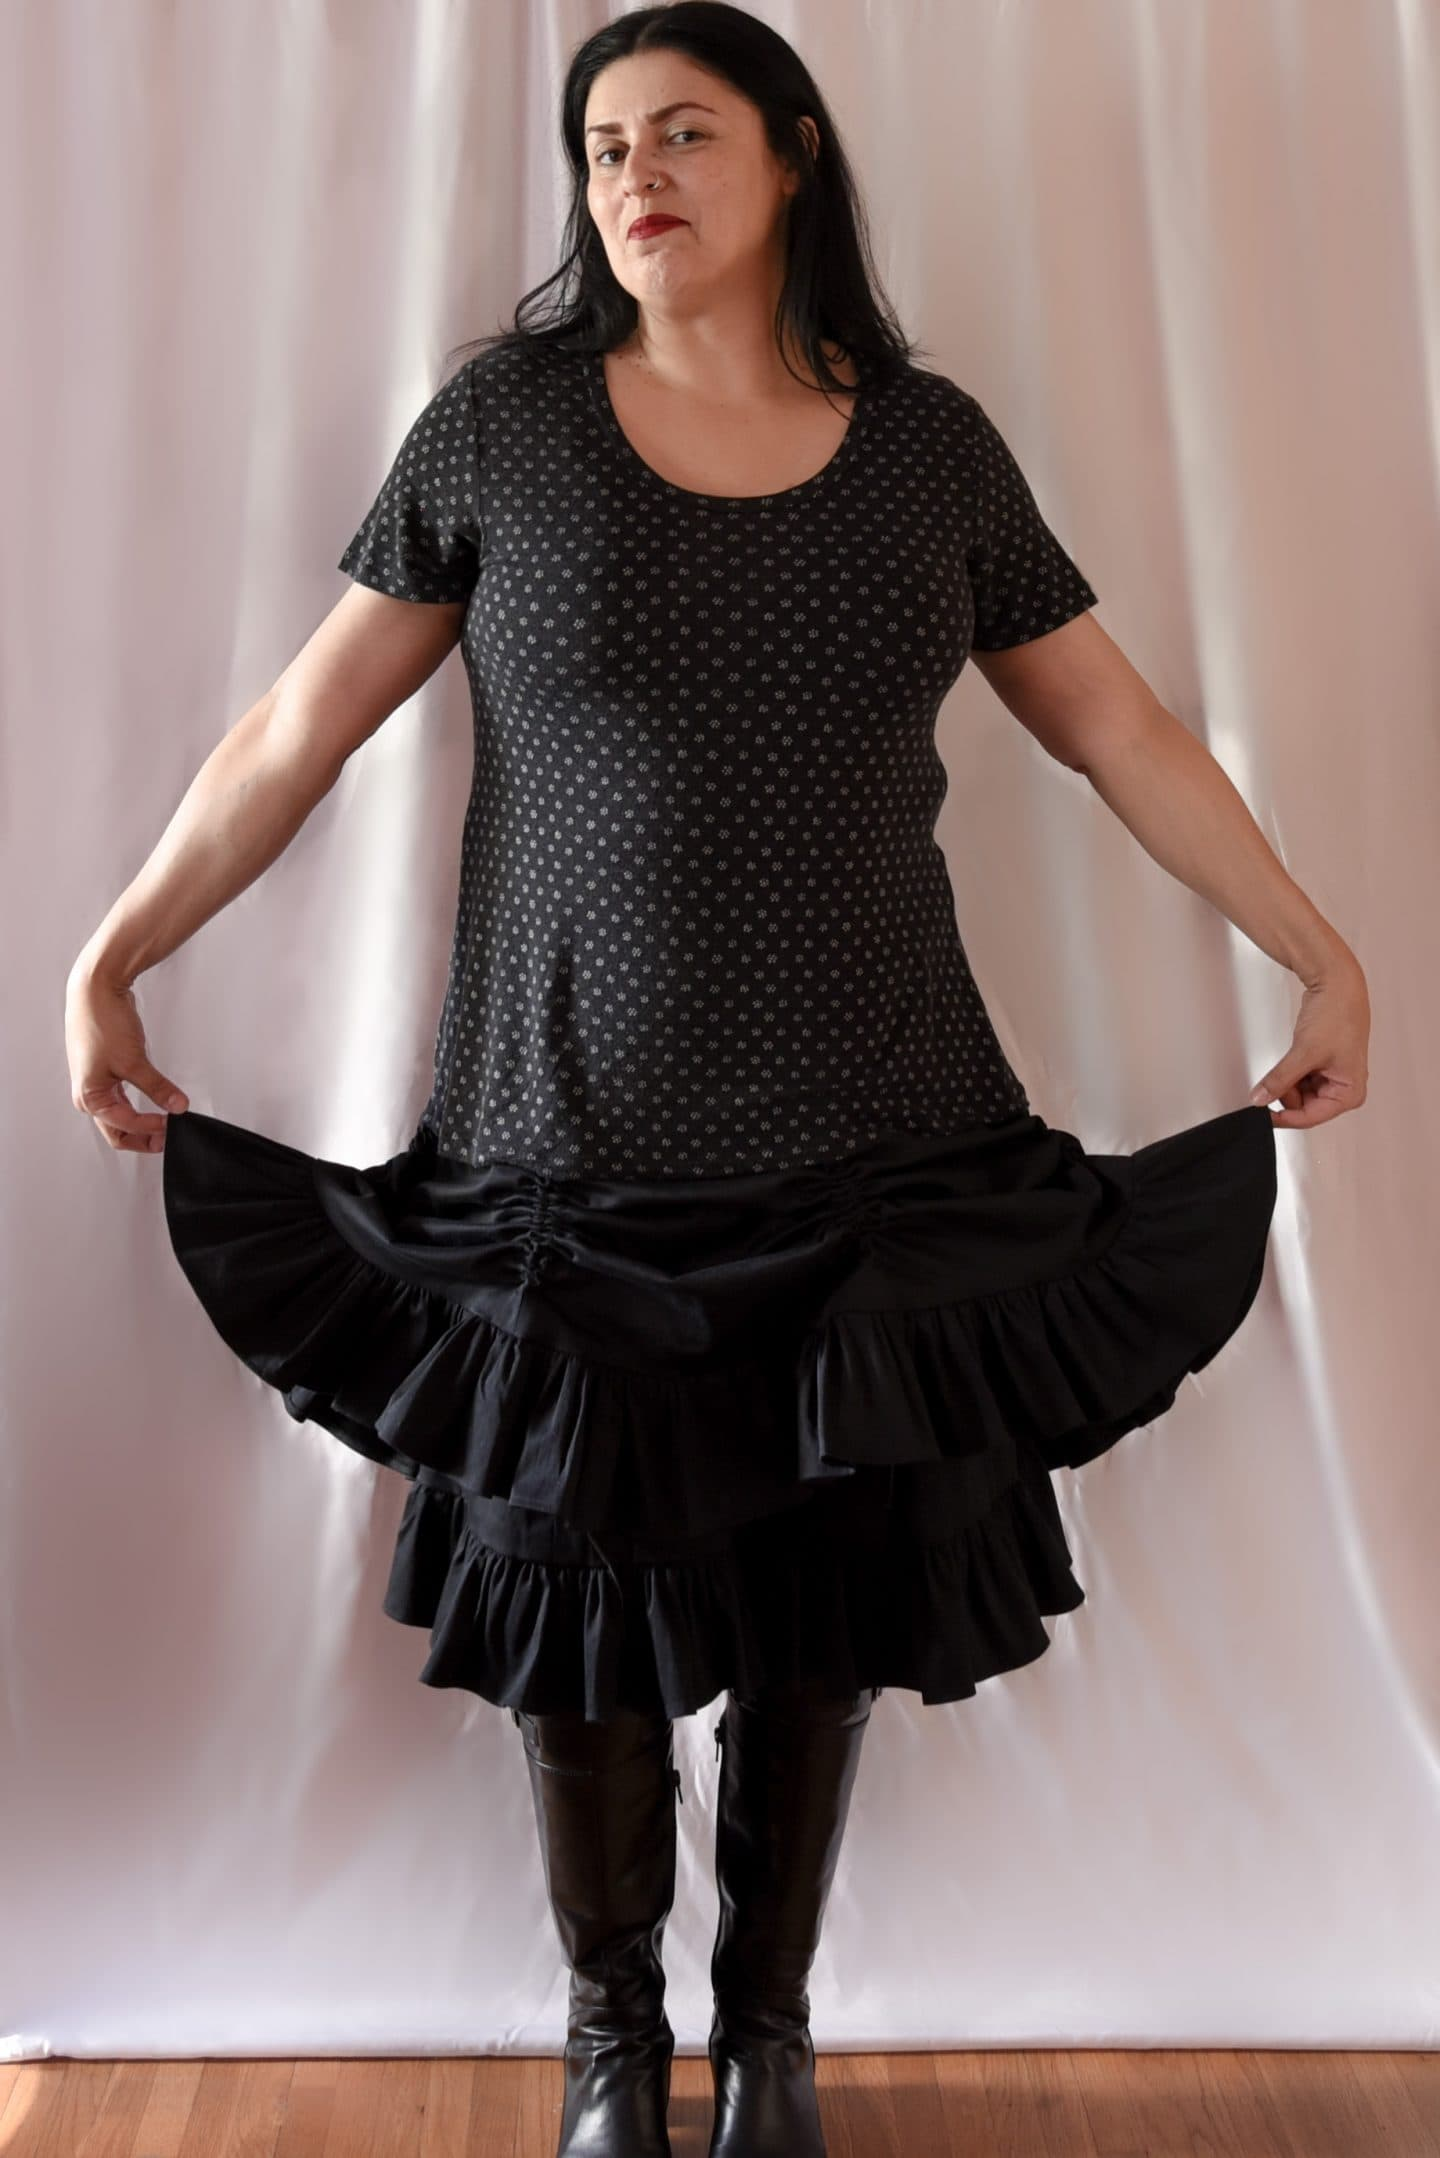 Image of a woman with long black hair smiling to the camera wearing a polka-dotted T-shirt and a Victorian-inspired black skirt with with two layers with the top skirt with two channels raised to created a bustle effect